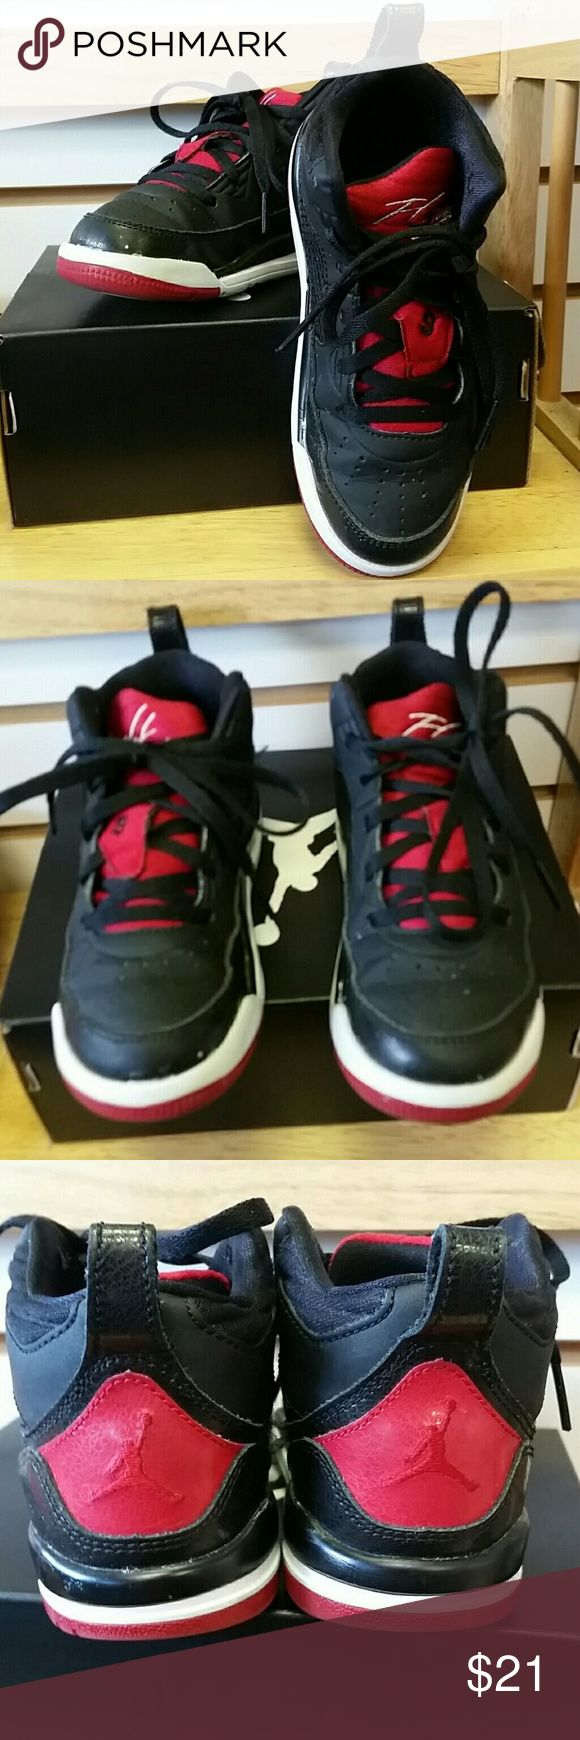 Boys Jordan Flight sneakers Vguc black and red  ships with box Jordan Shoes Sneakers